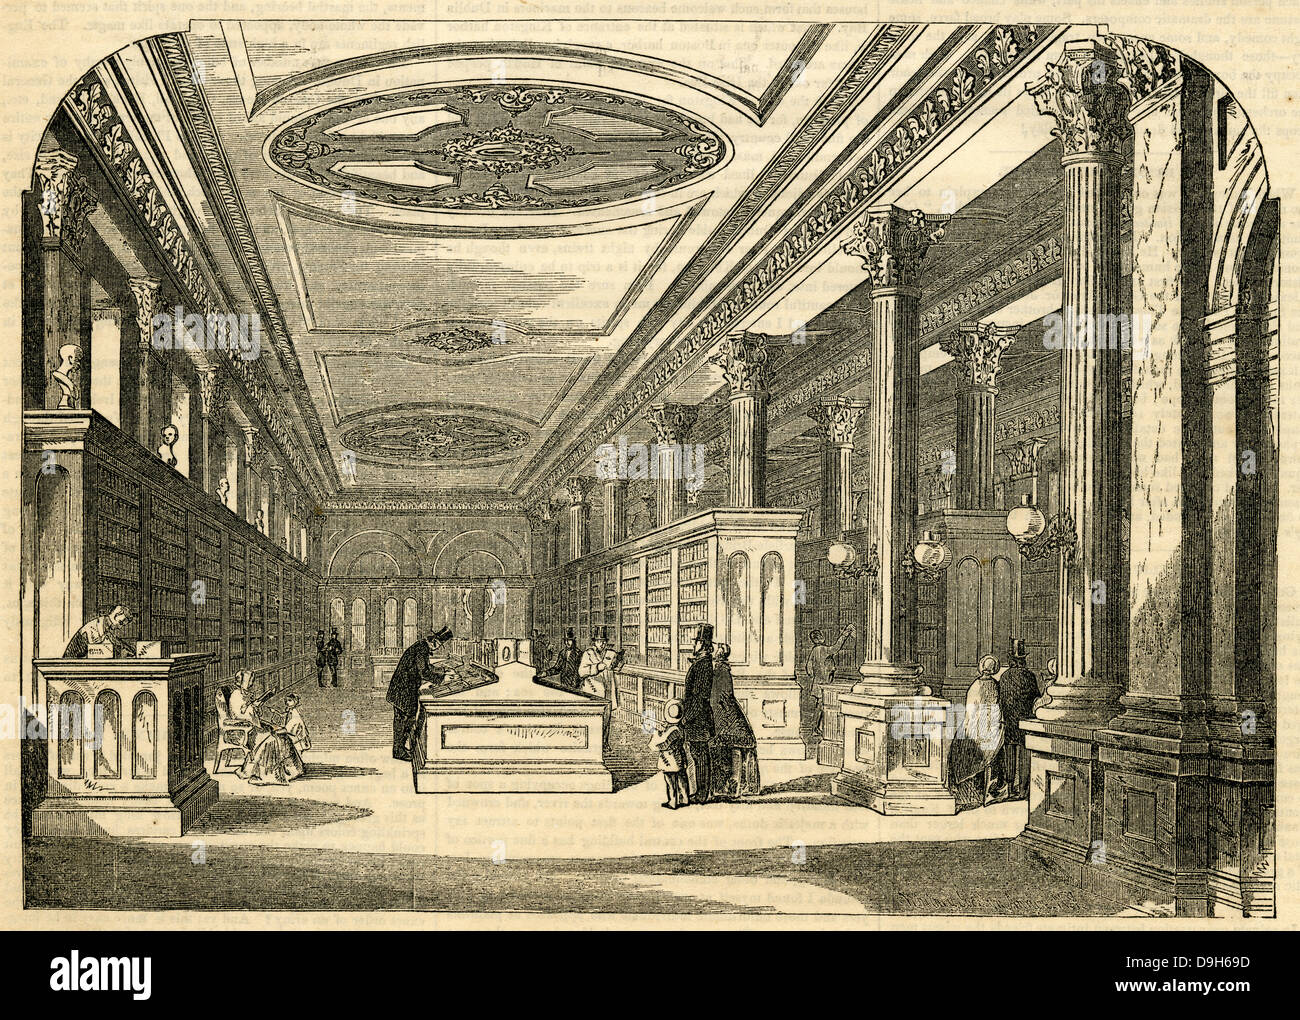 1854 engraving, Interior View of the Principle Sales-Room of D. Appleton & Co.'s Bookstore, 346 and 348 - Stock Image